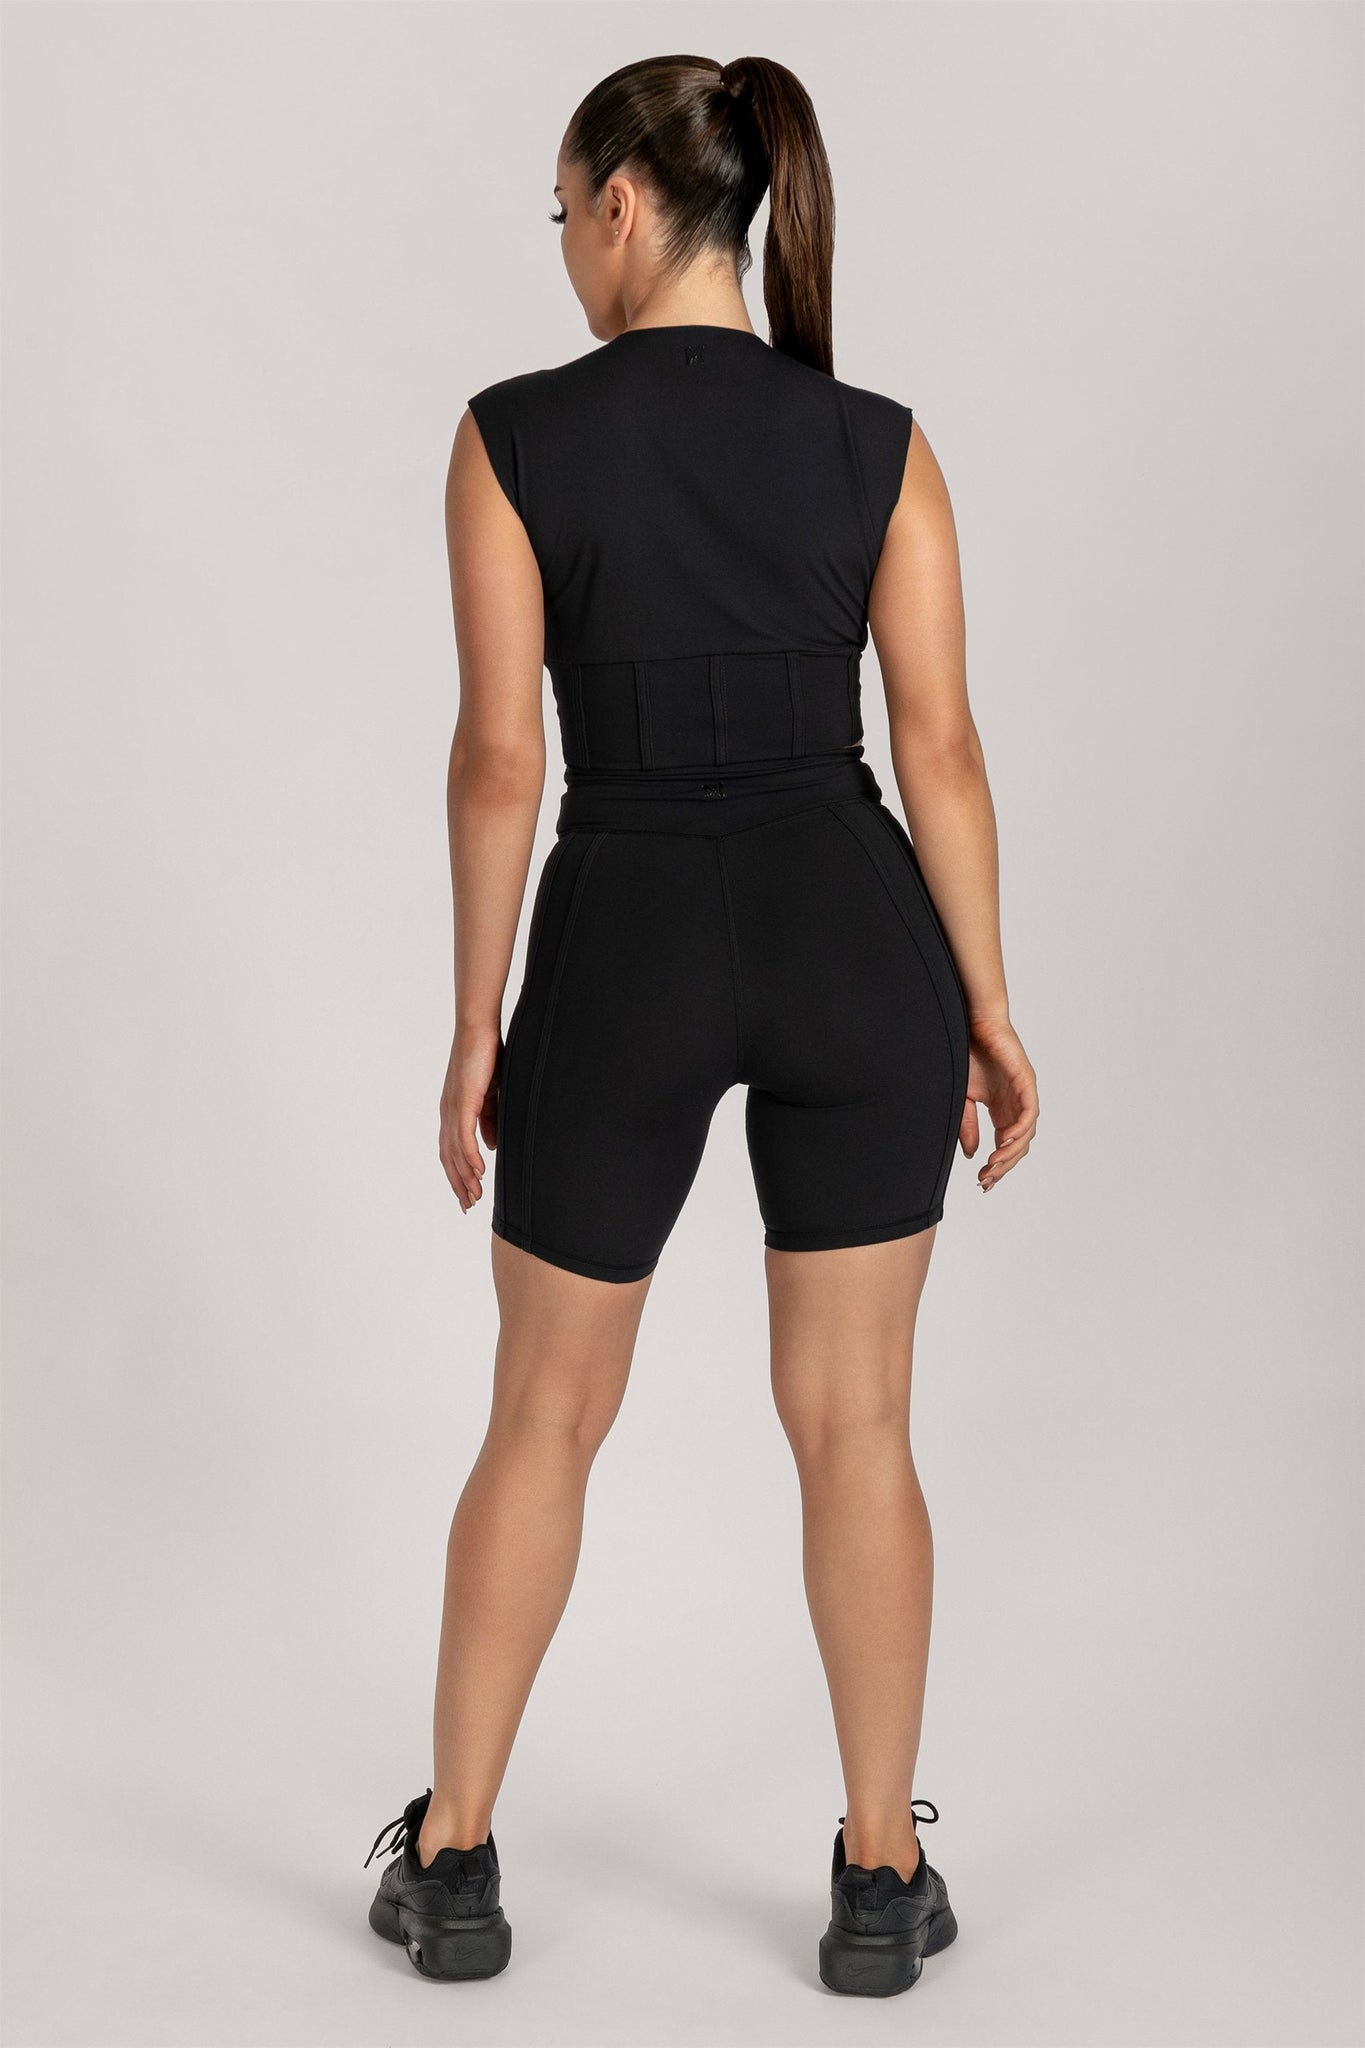 Hestia Panelled Sleeveless Crop Top - Black - MESHKI